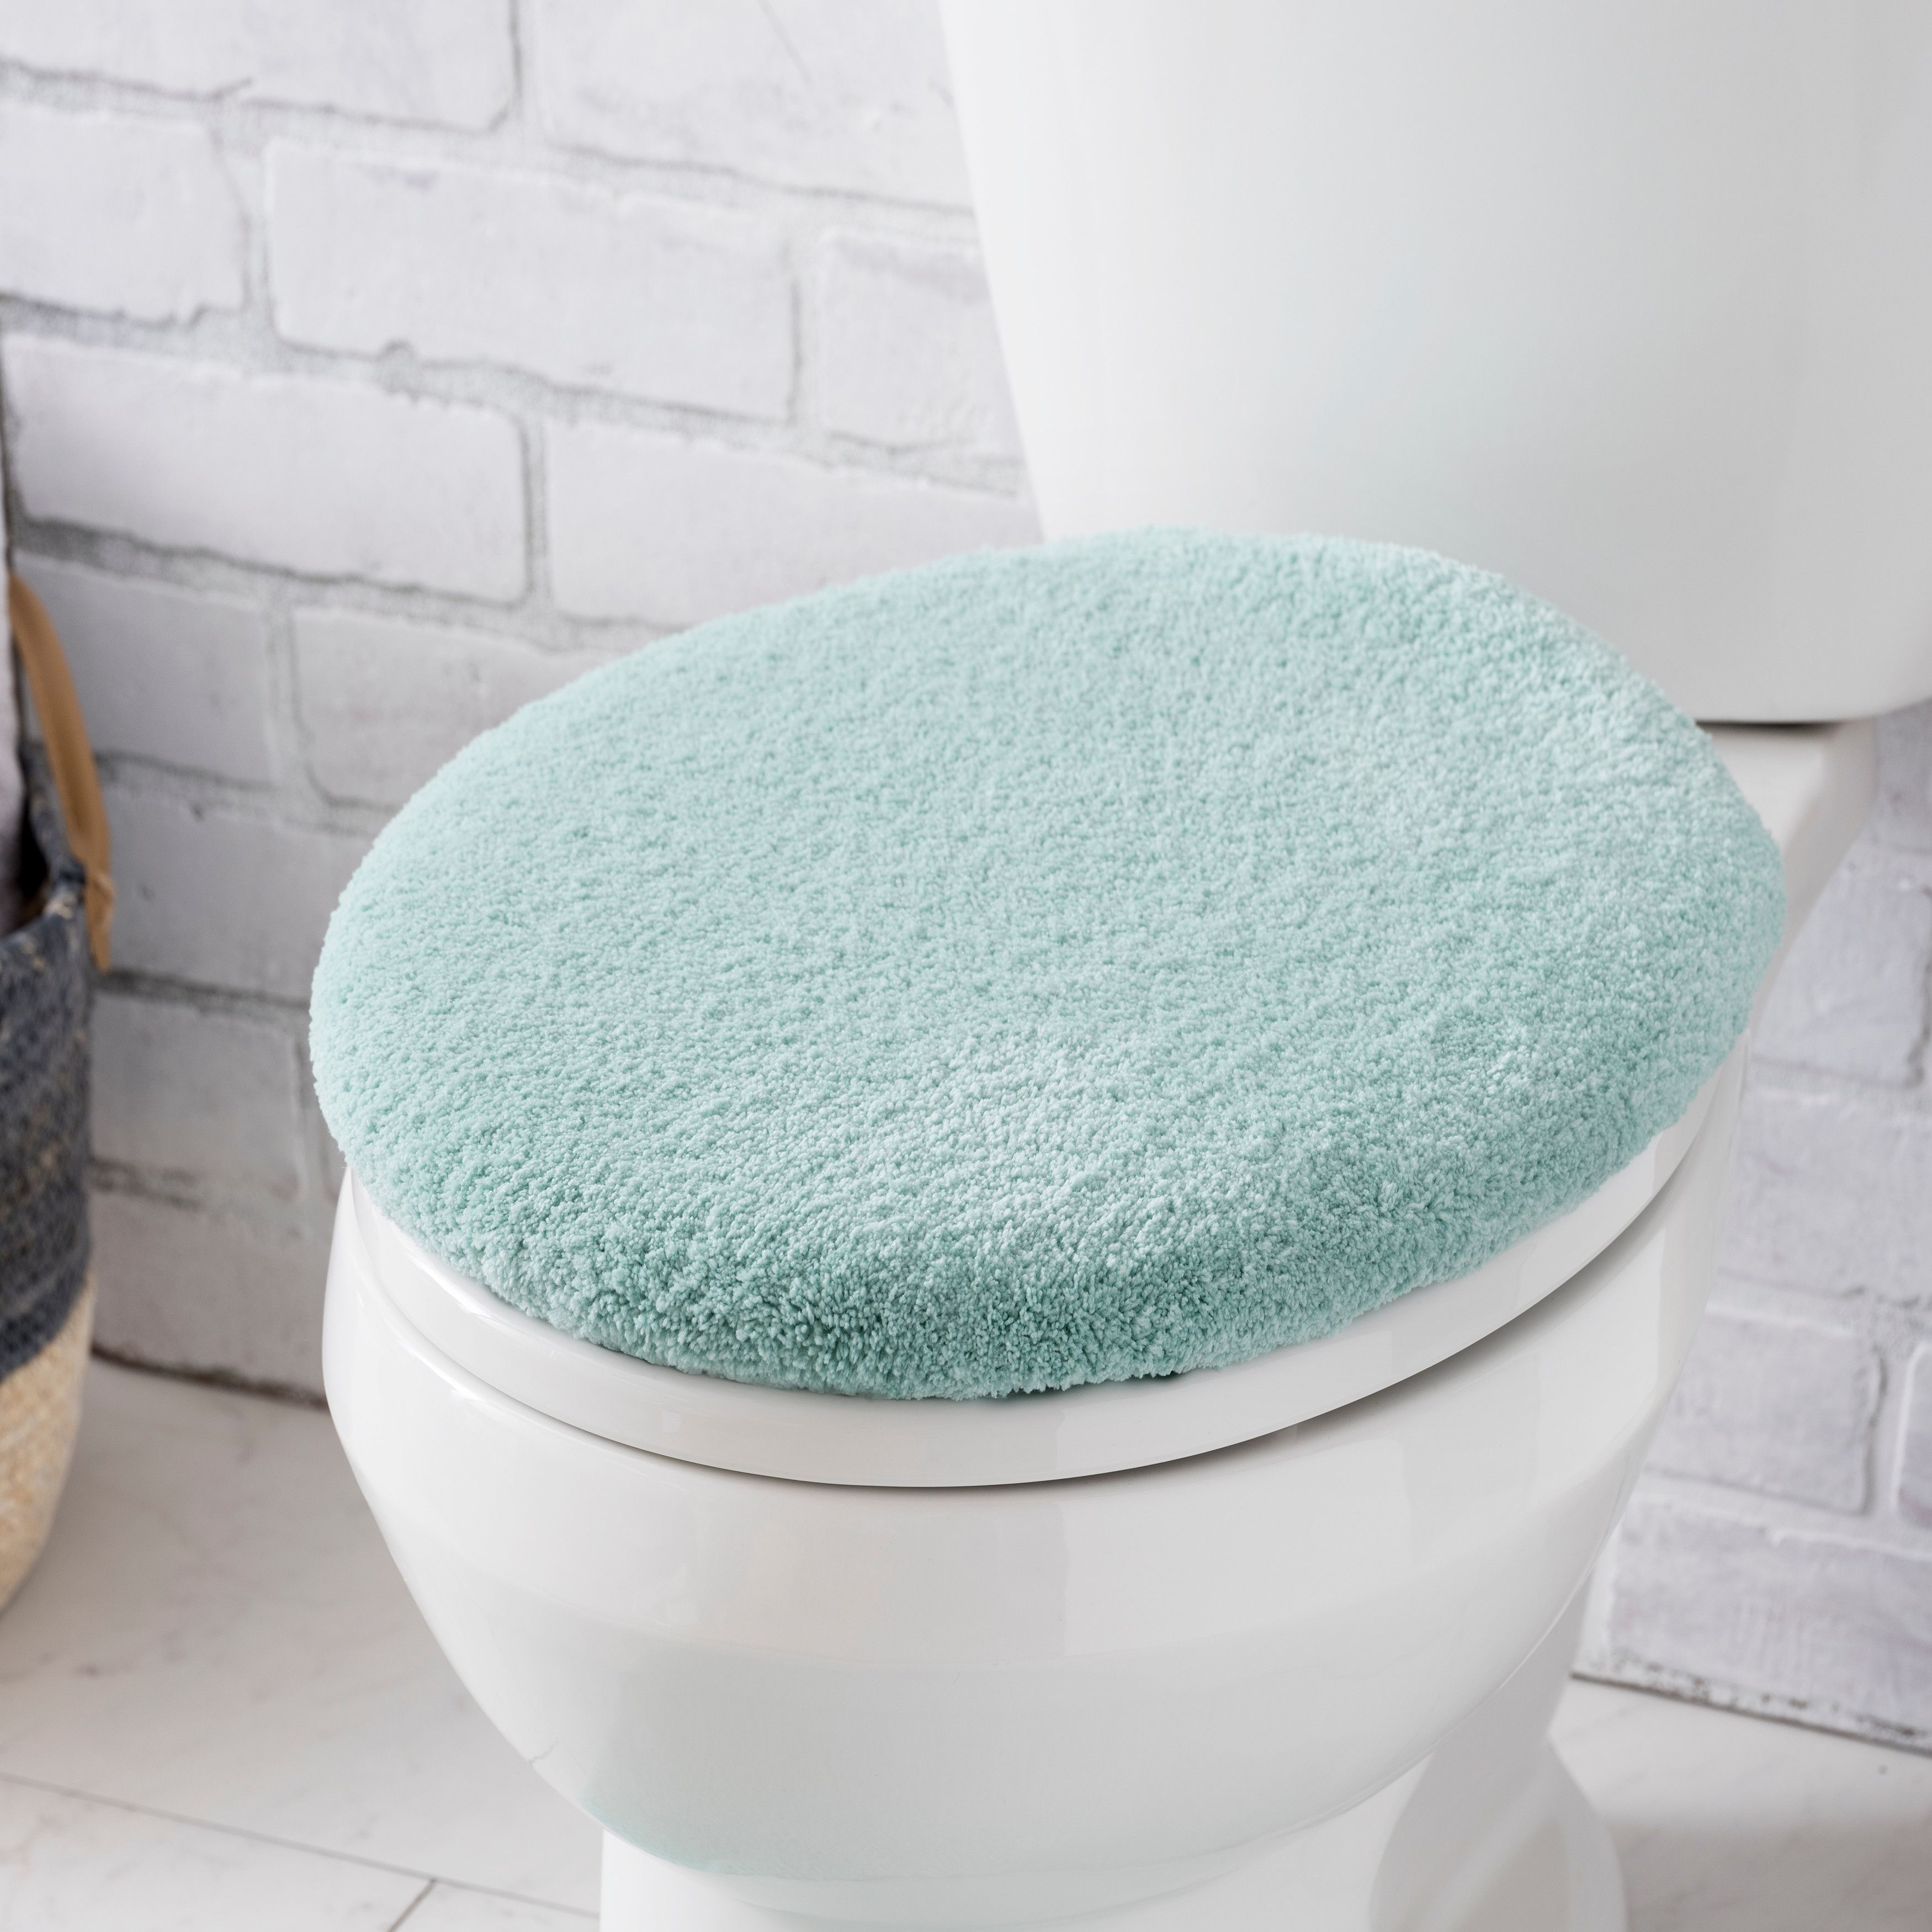 92b33237982e2ed07d05dd013979475c - Better Homes And Gardens Thick And Plush Bath Collection Contour